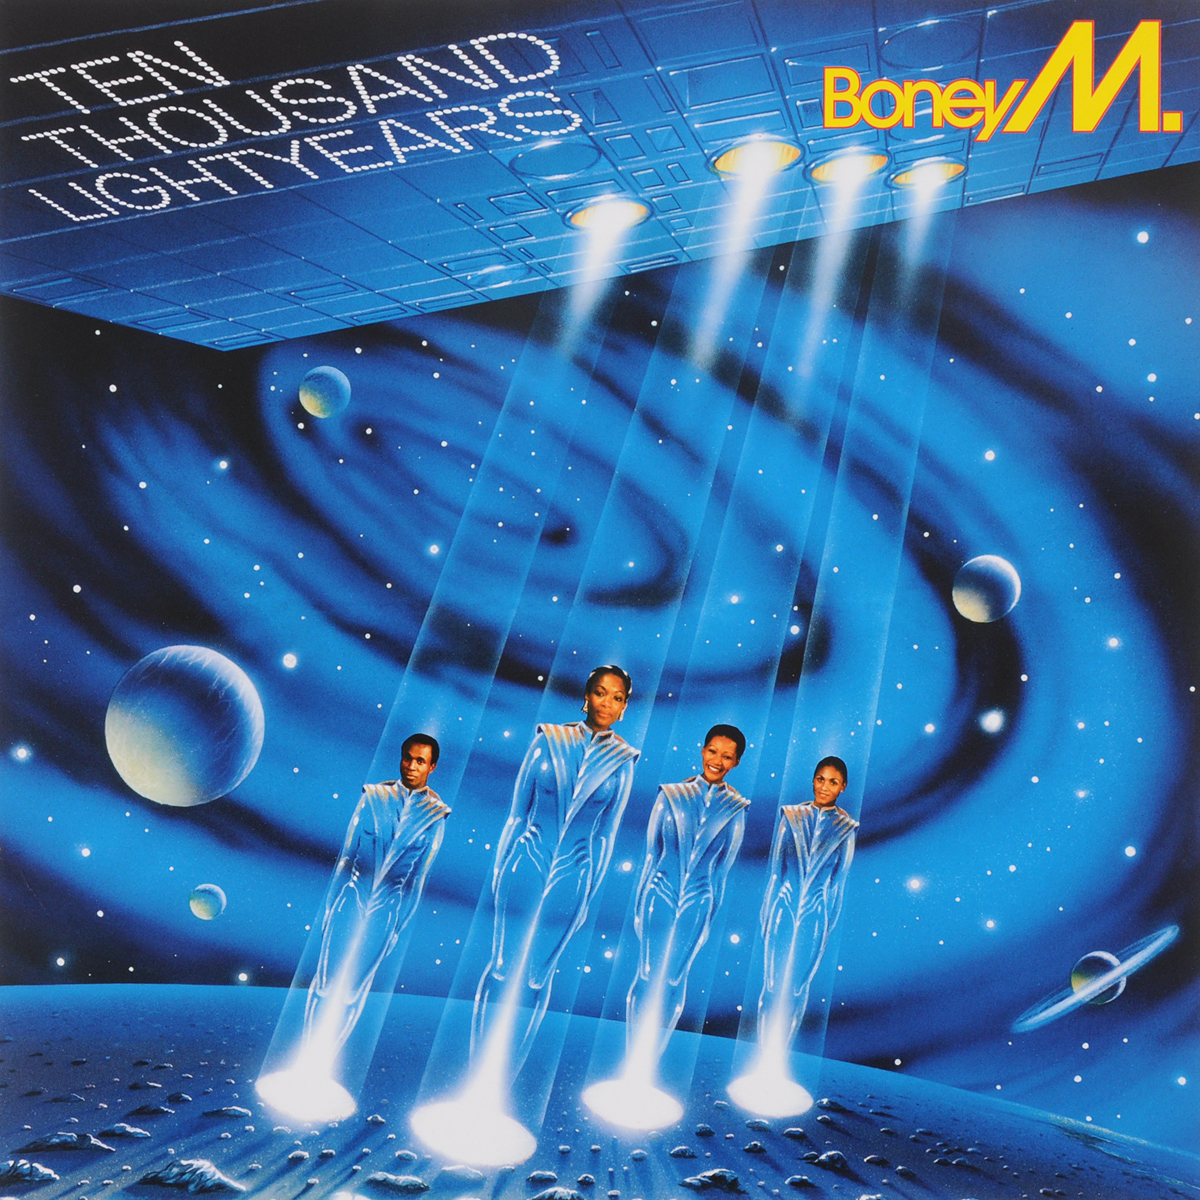 Boney M Boney M. 10.000 Lightyears (LP) boney m boney m diamonds 40th anniversary lp 3cd dvd